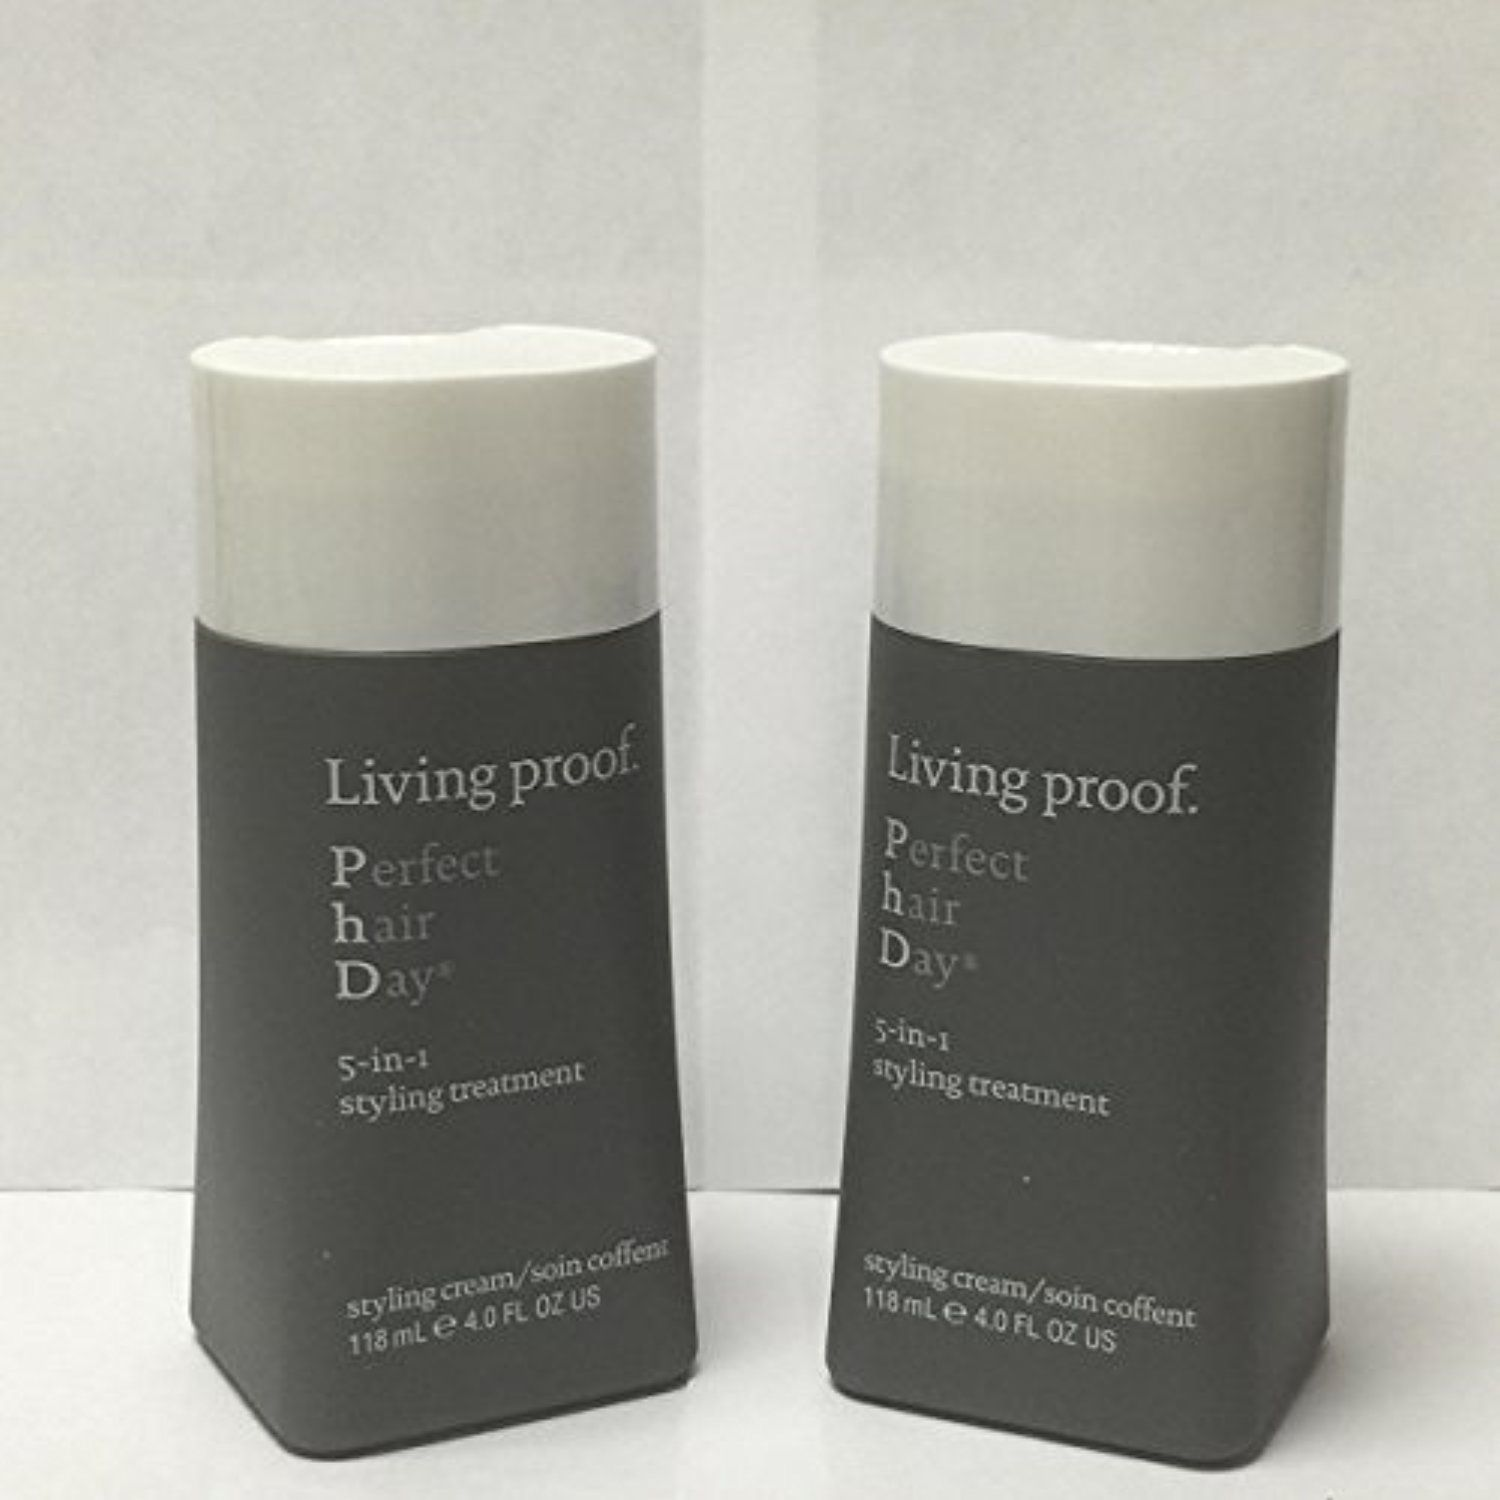 Living Proof Perfect Hair Day 5 In 1 Styling Treatment 4 Ounce EACH